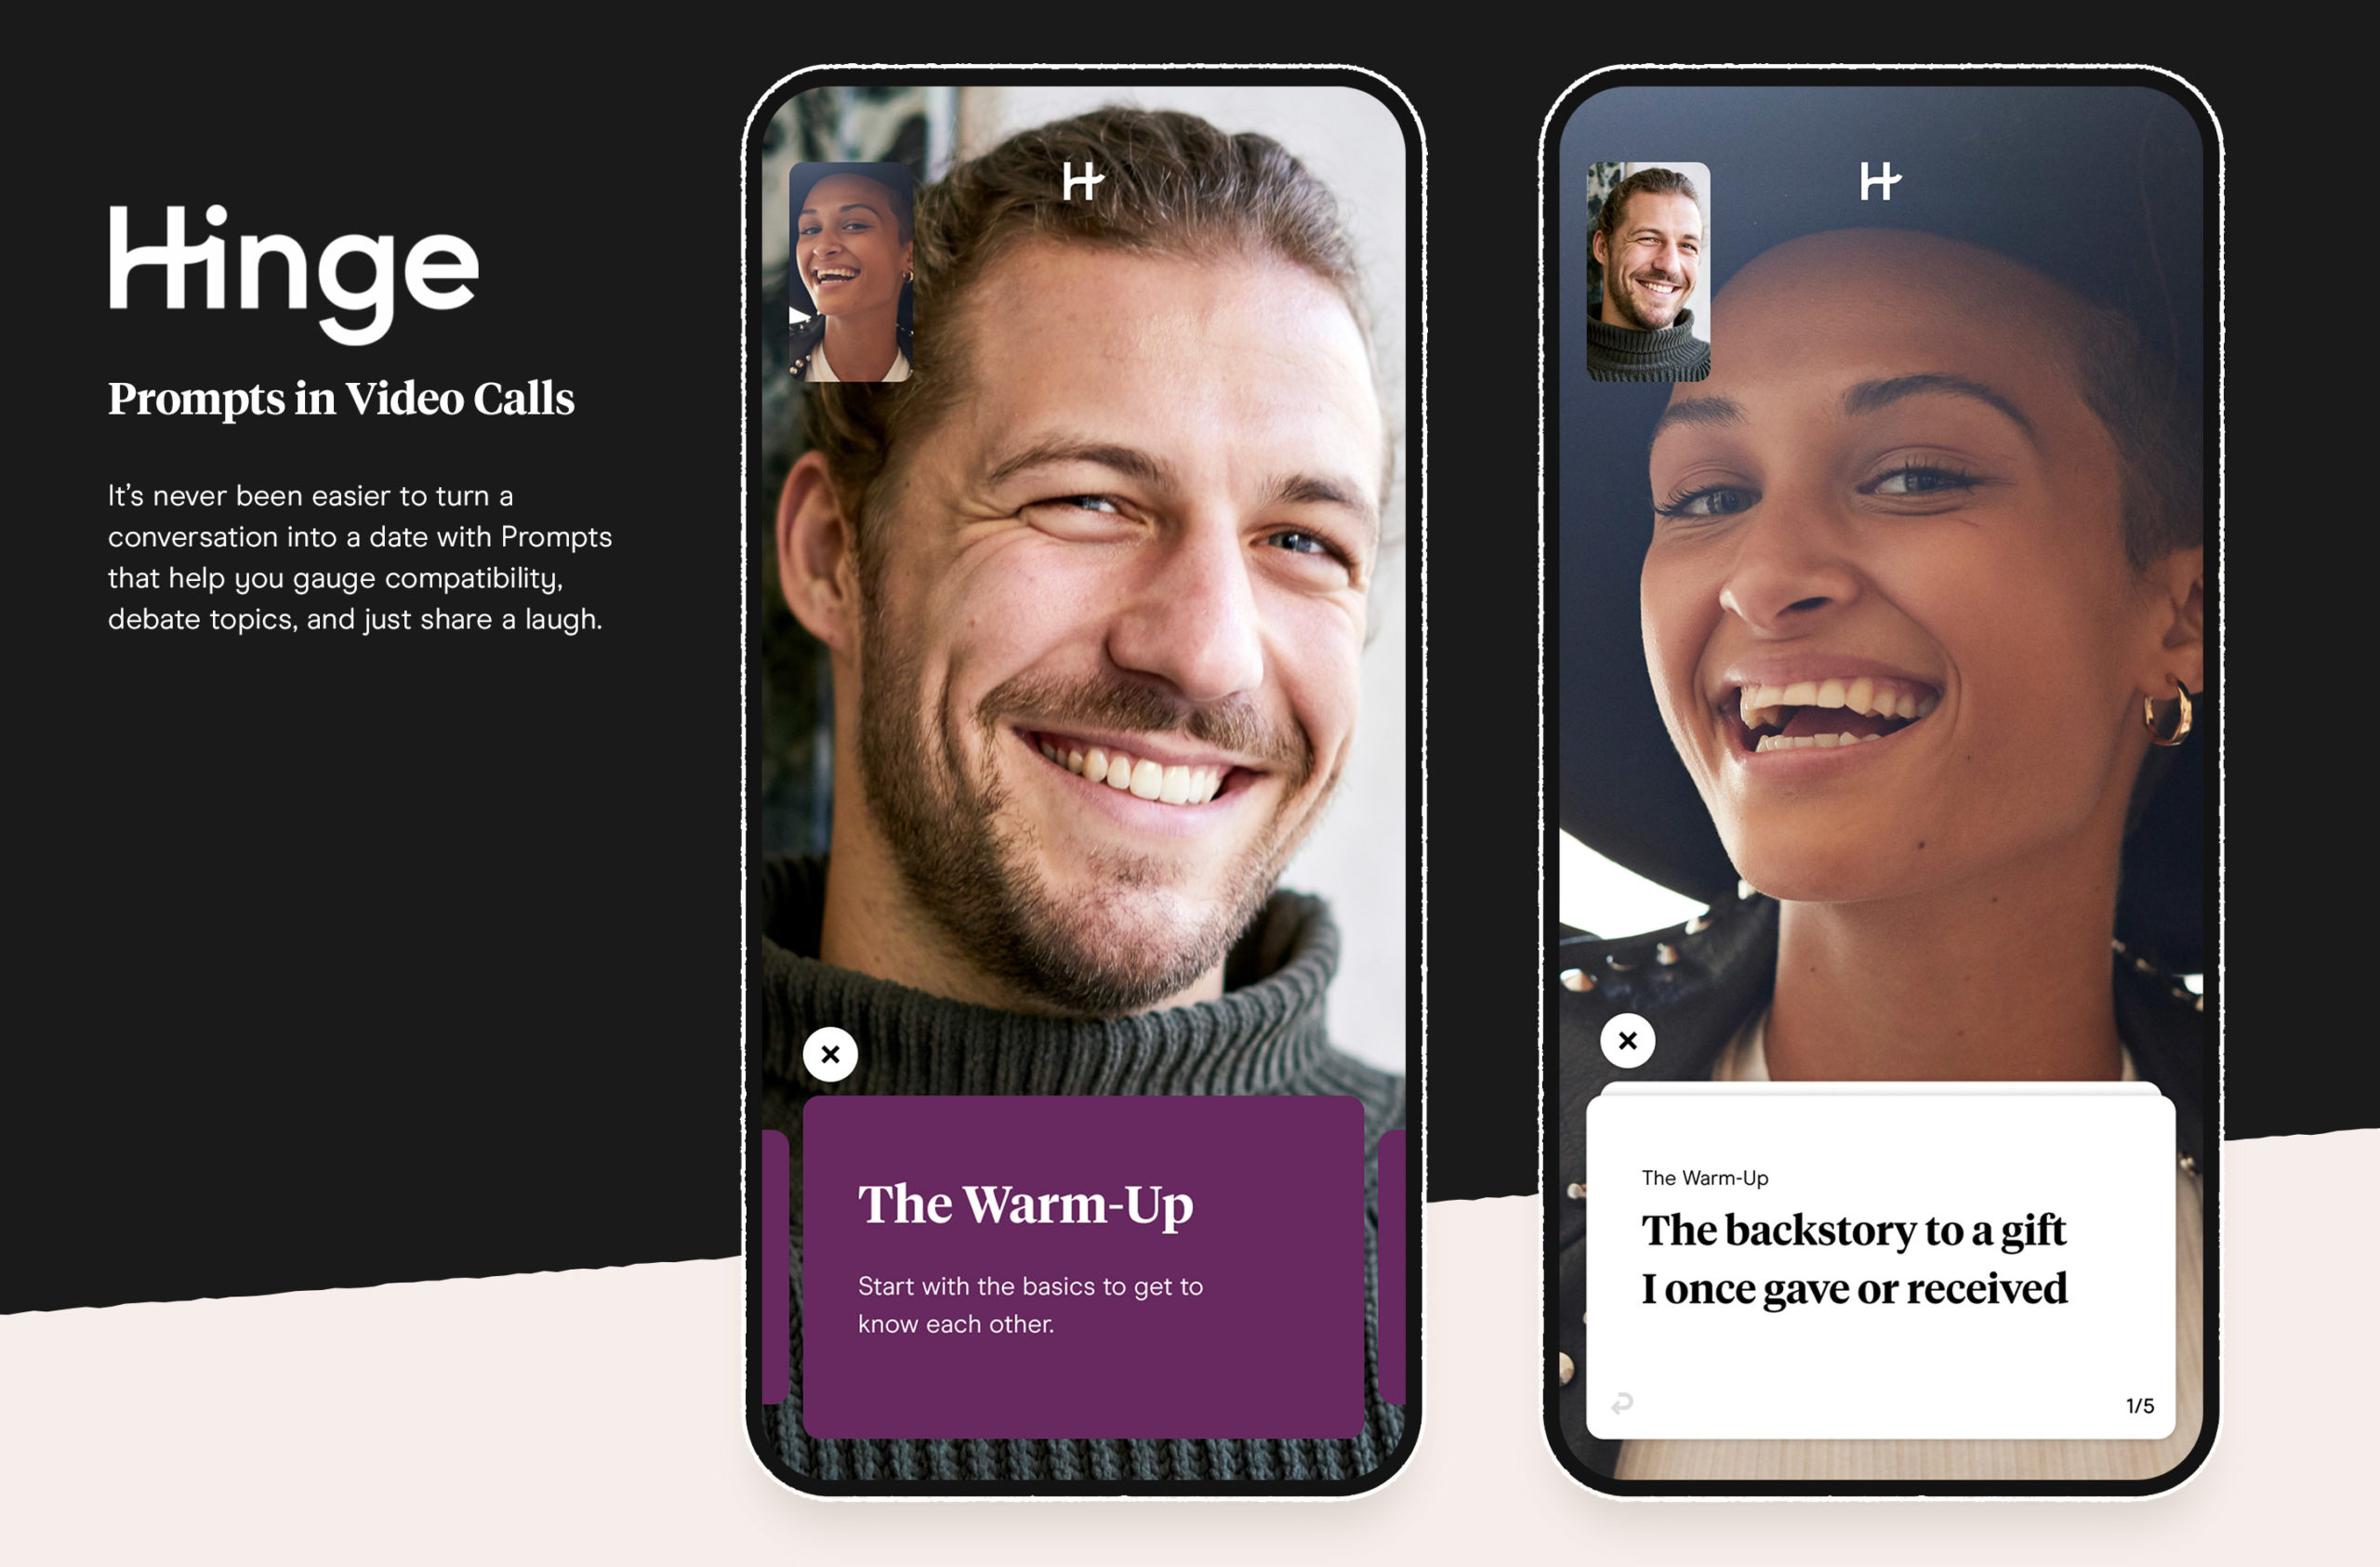 Hinge now includes video prompts to help facilitate a new approach to dating.